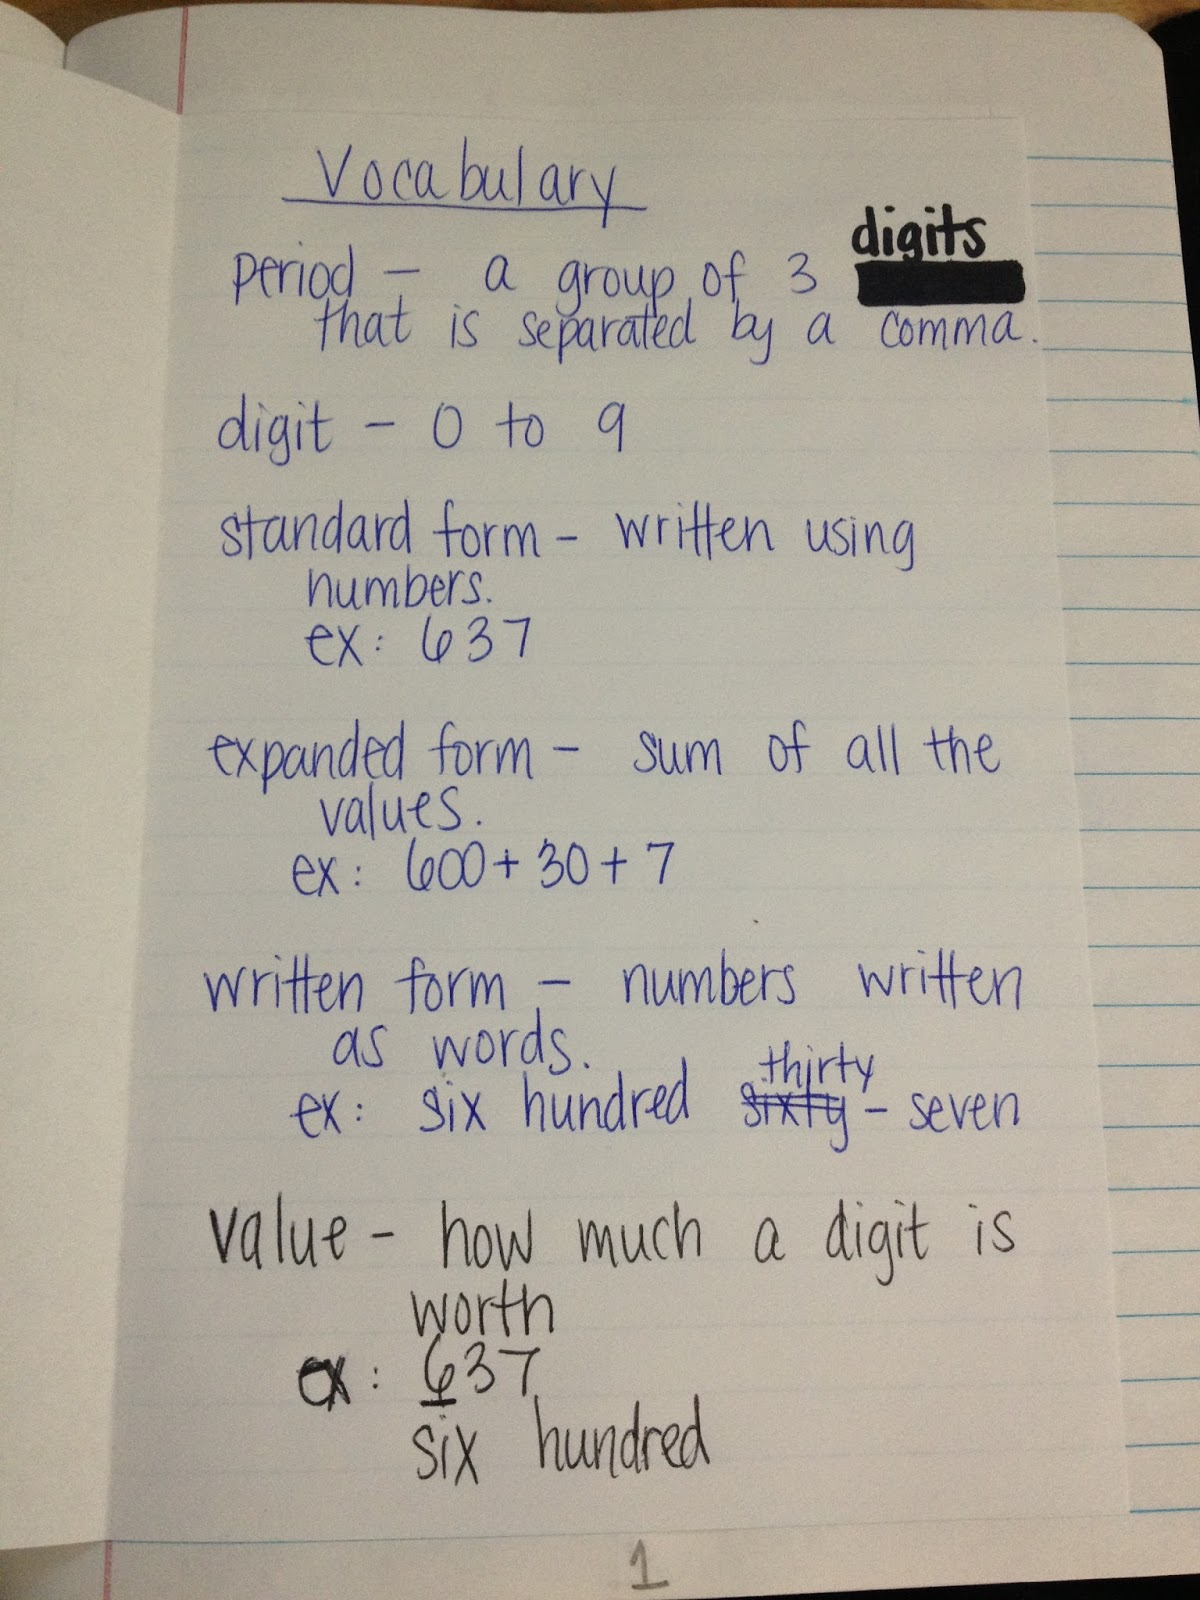 Short Word Form Math Worksheets